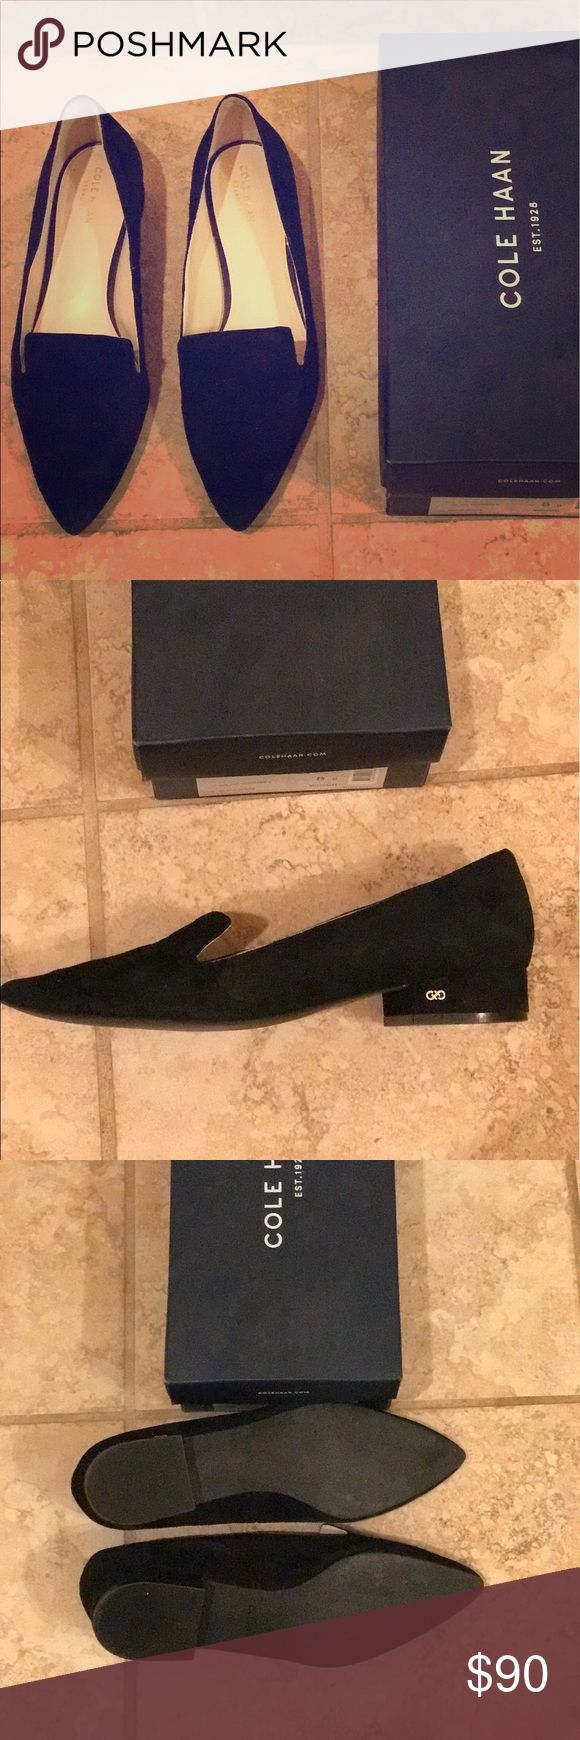 Cole haan black suede loafers Worn twice! They rubbed my heel on the right and I placed a thin furry liner which just didn't work for me. Should easily come off. Otherwise perfect condition! Cole Haan Shoes Flats & Loafers